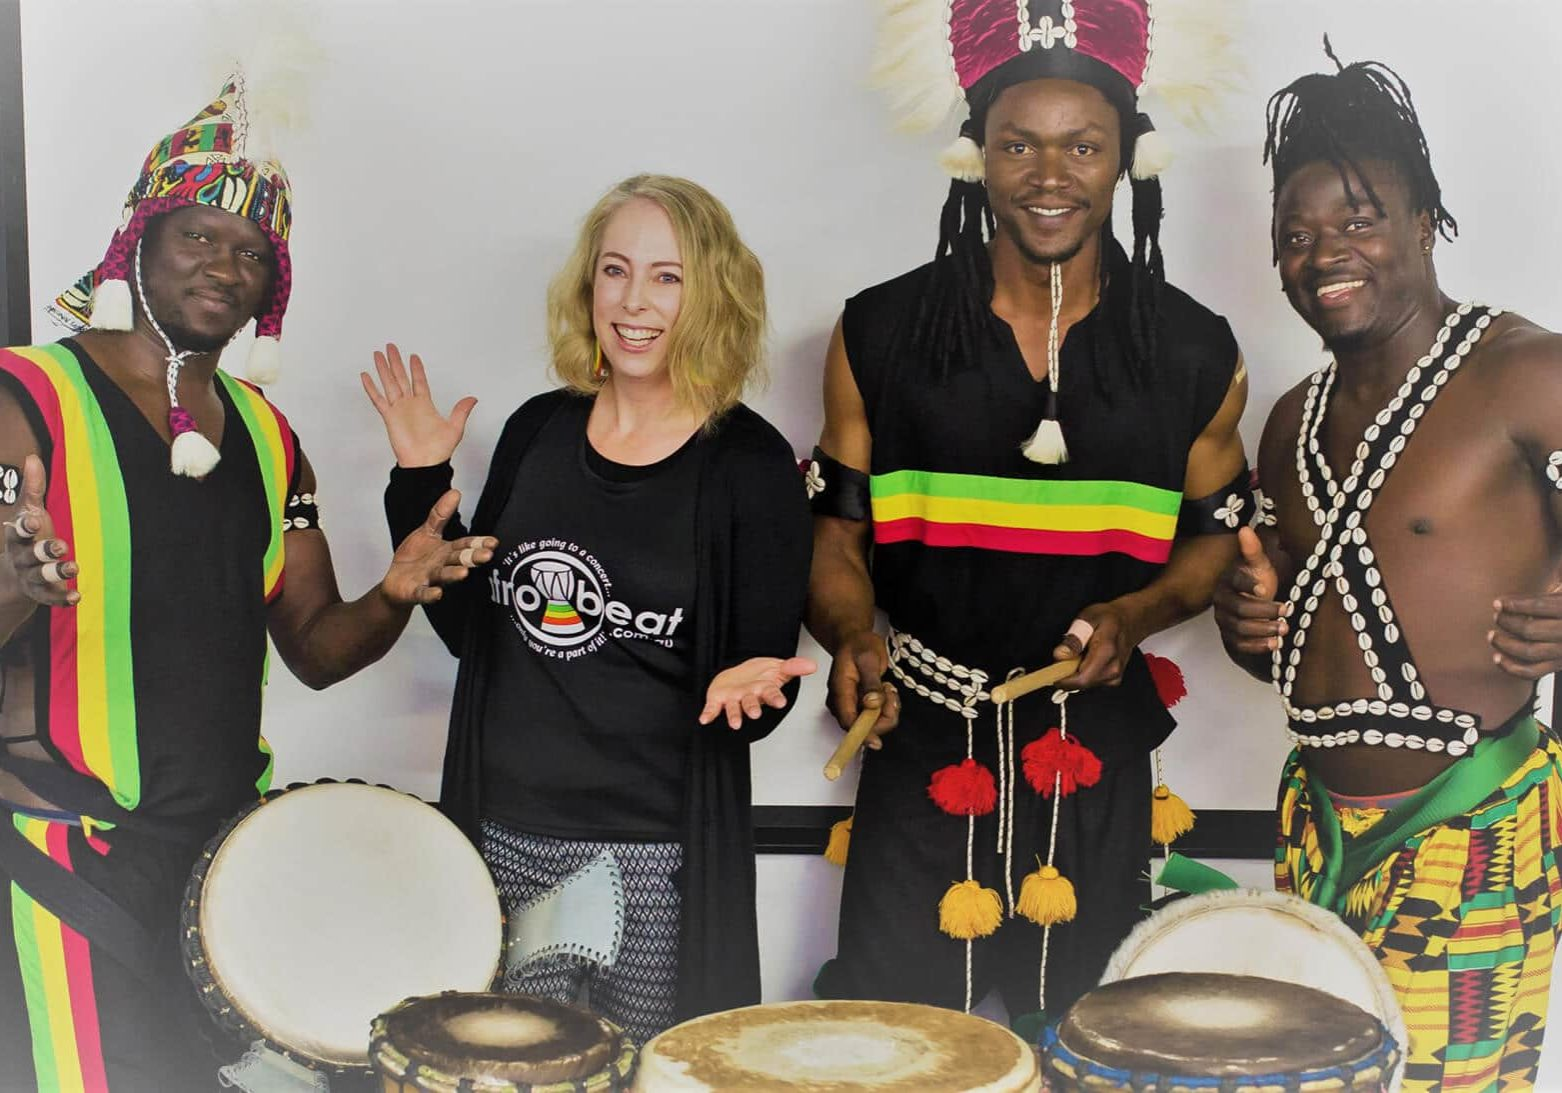 Our People Team Afrobeat